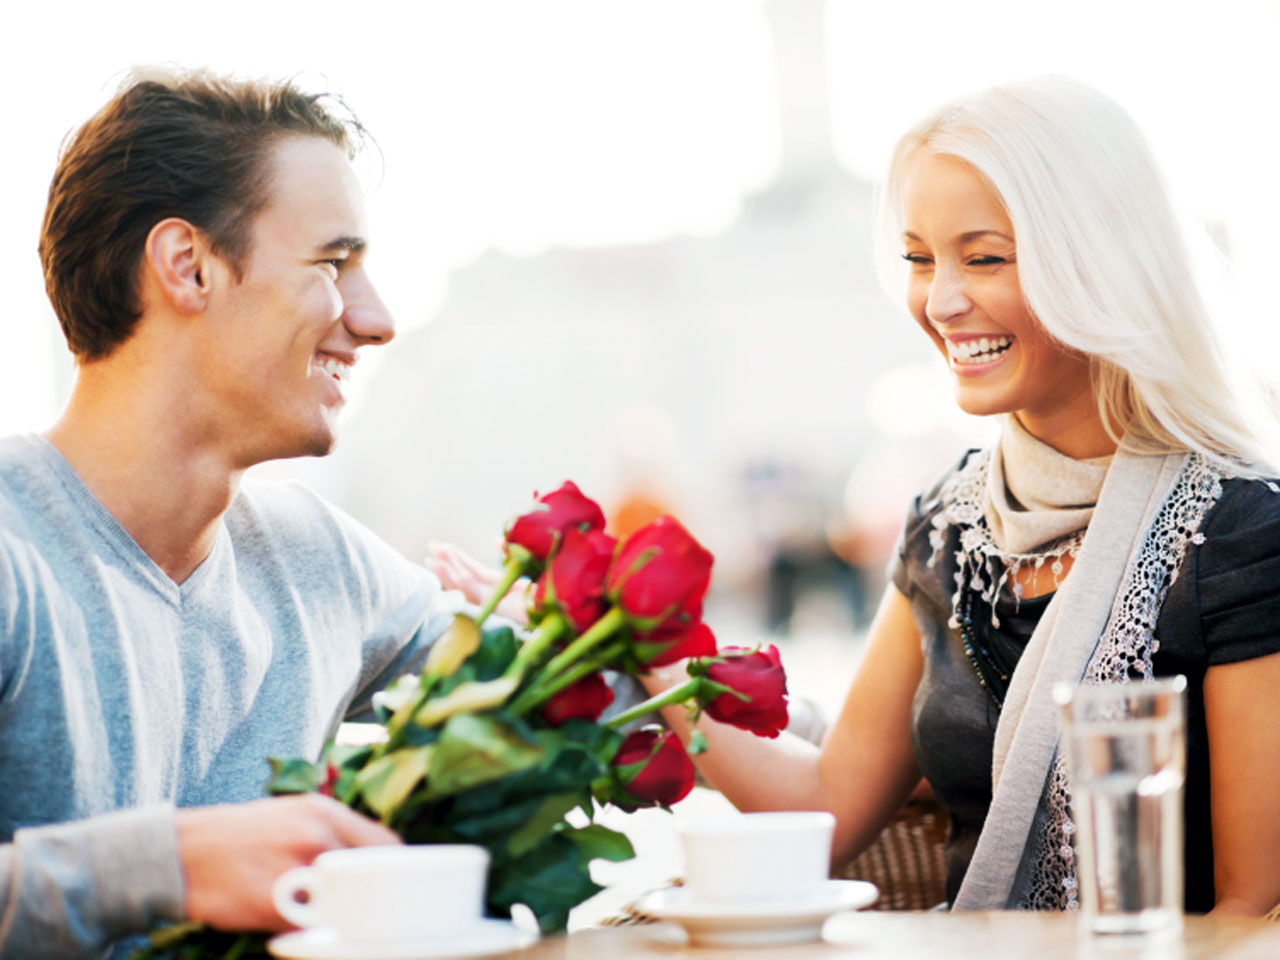 minnesota city single parent dating site Singleparentlove is a popular single parent dating website helping single moms and single with a proven track record as the leading single parent dating site.